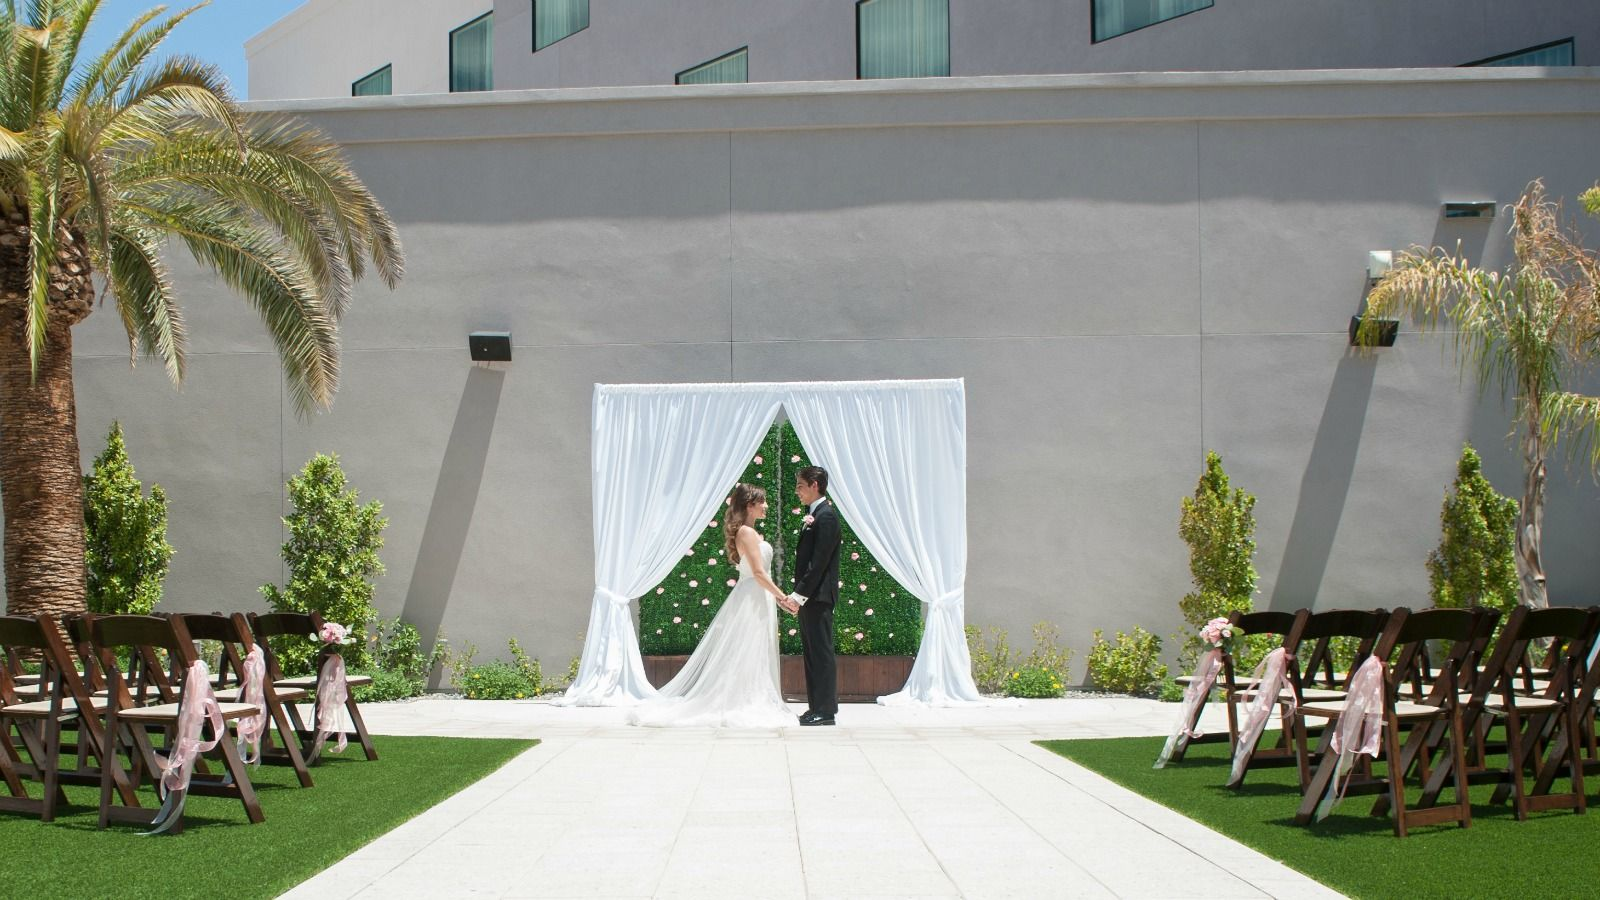 Wedding Venues in Phoenix - Outdoor Ceremony